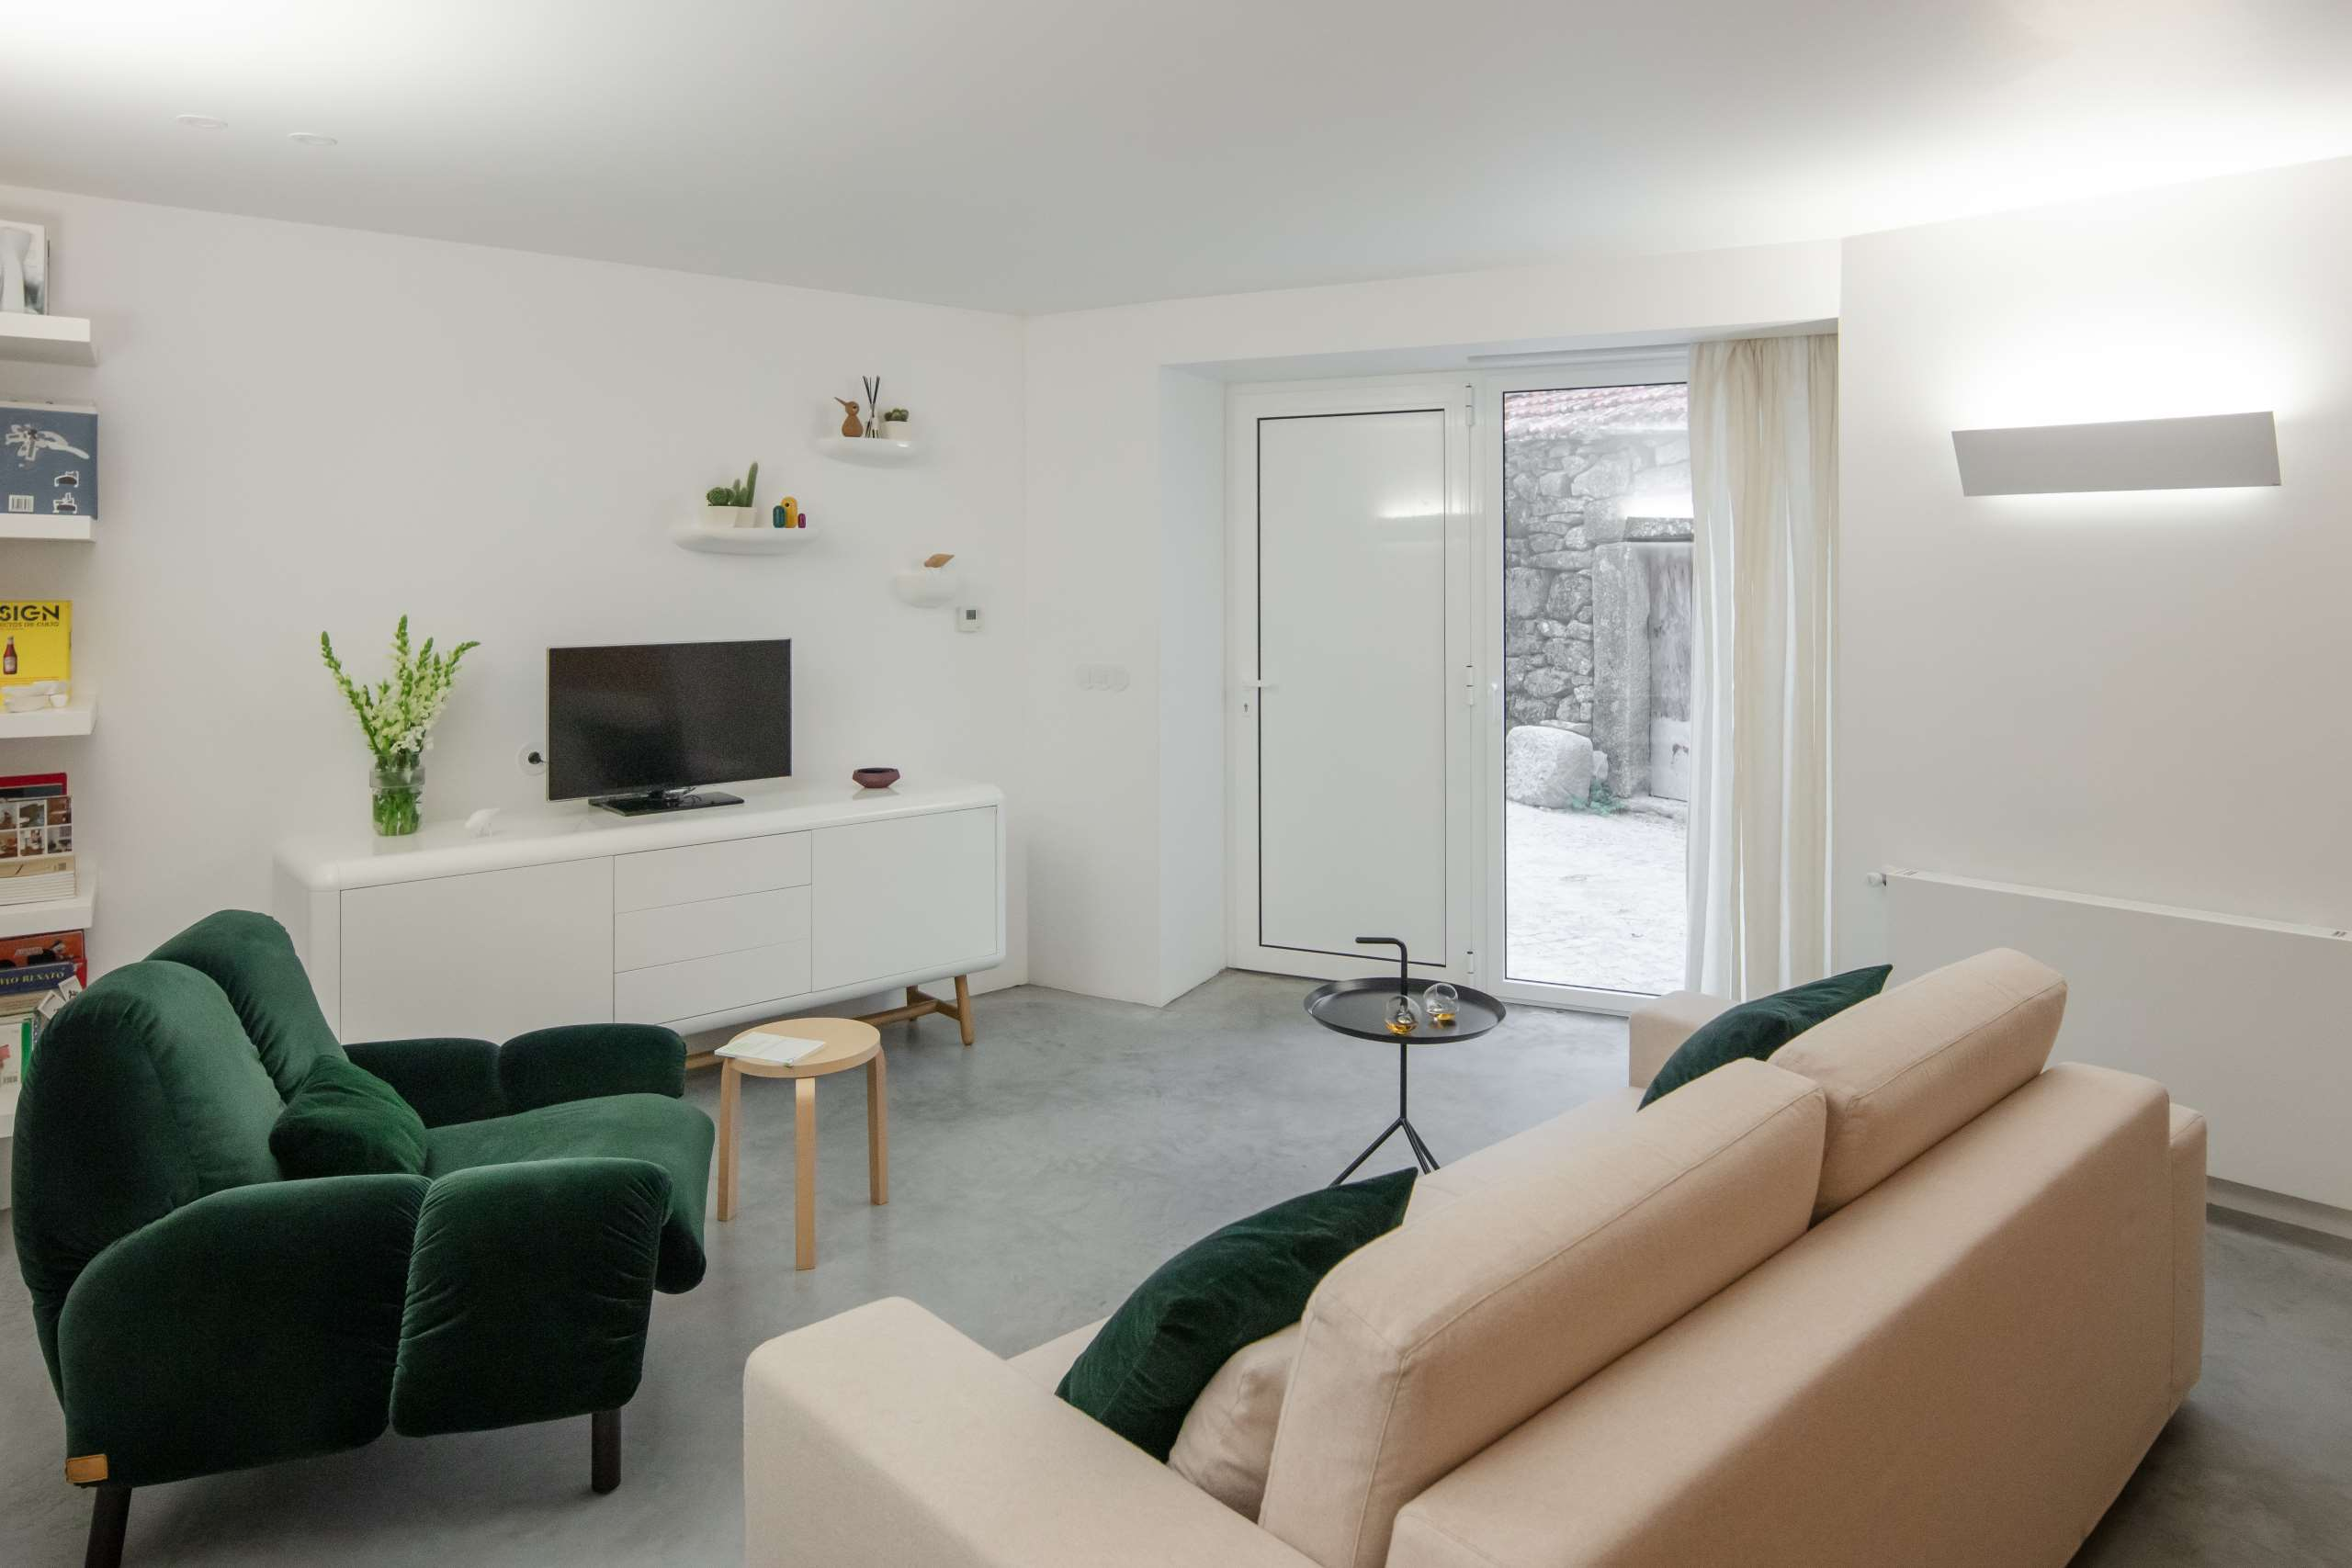 The living room features a neutral color scheme, emerald touches and some chic lights